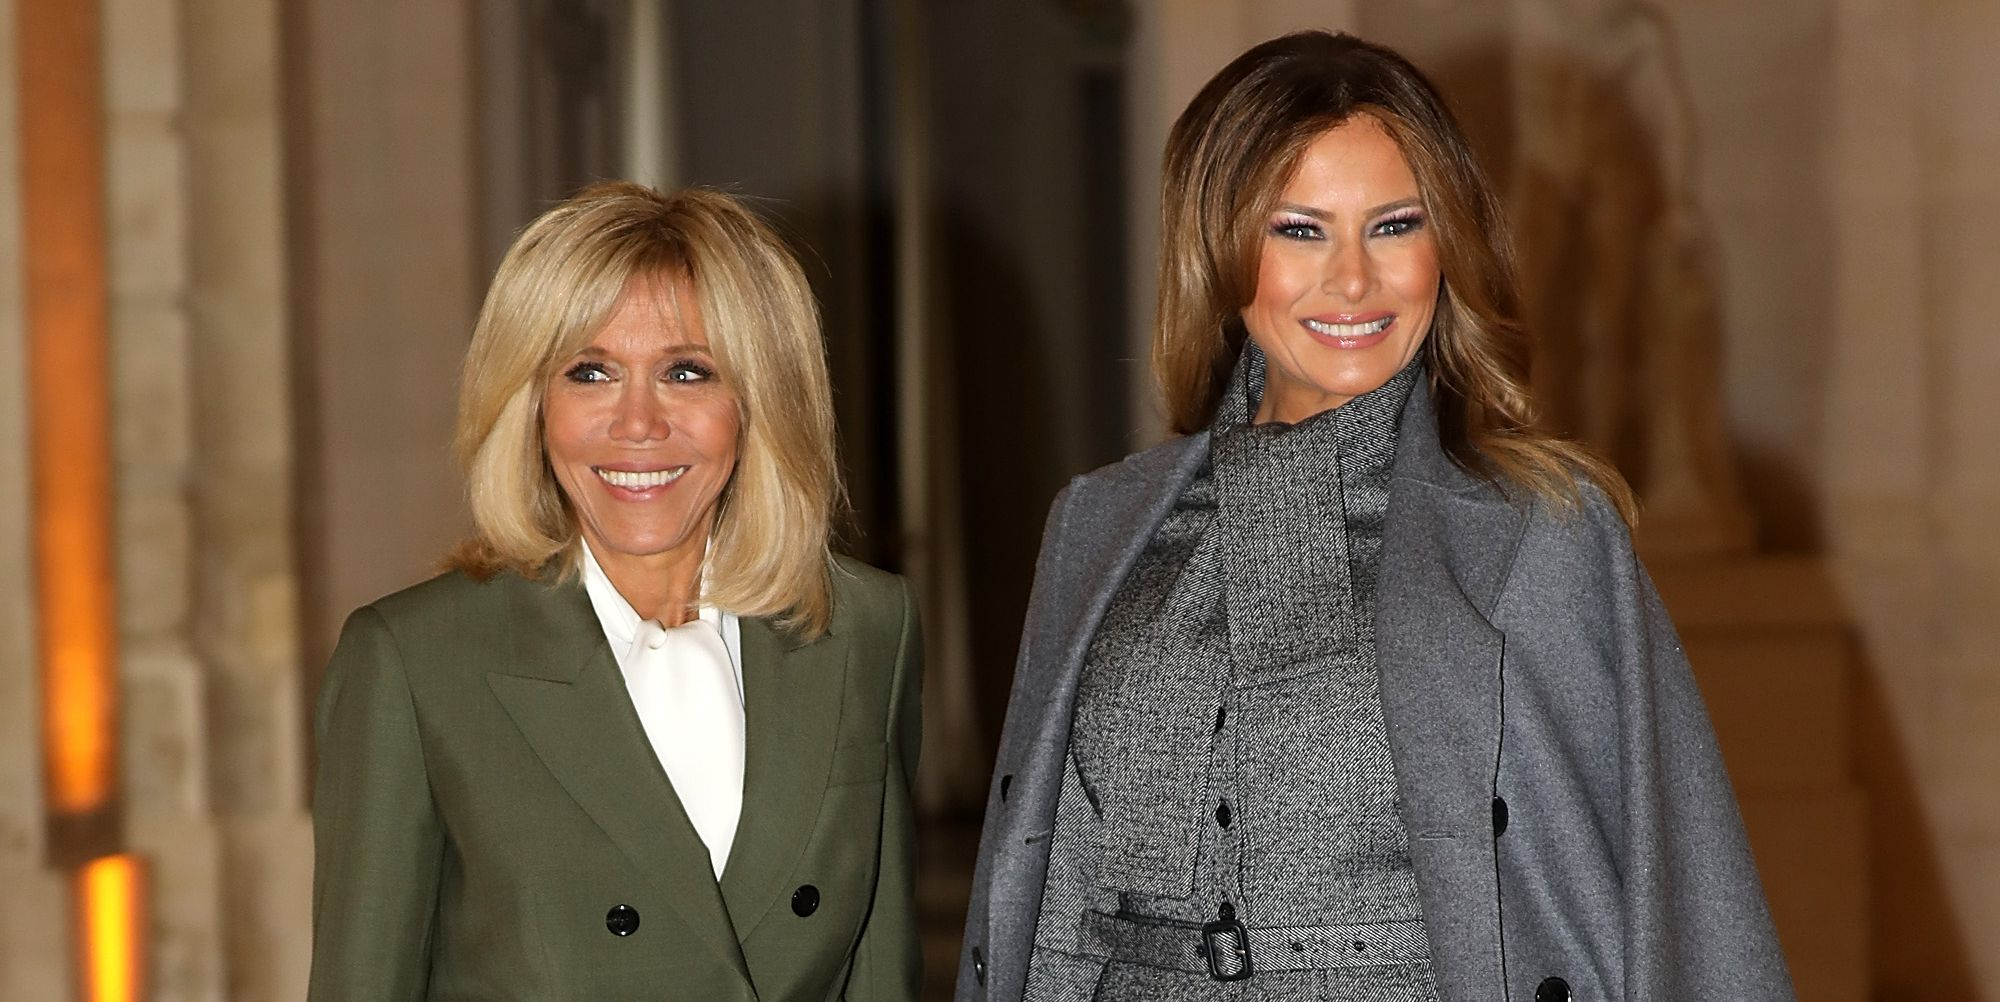 French President's Wife Brigite Macron Welcomes Head Of States' Partners At Chateau De Versailles